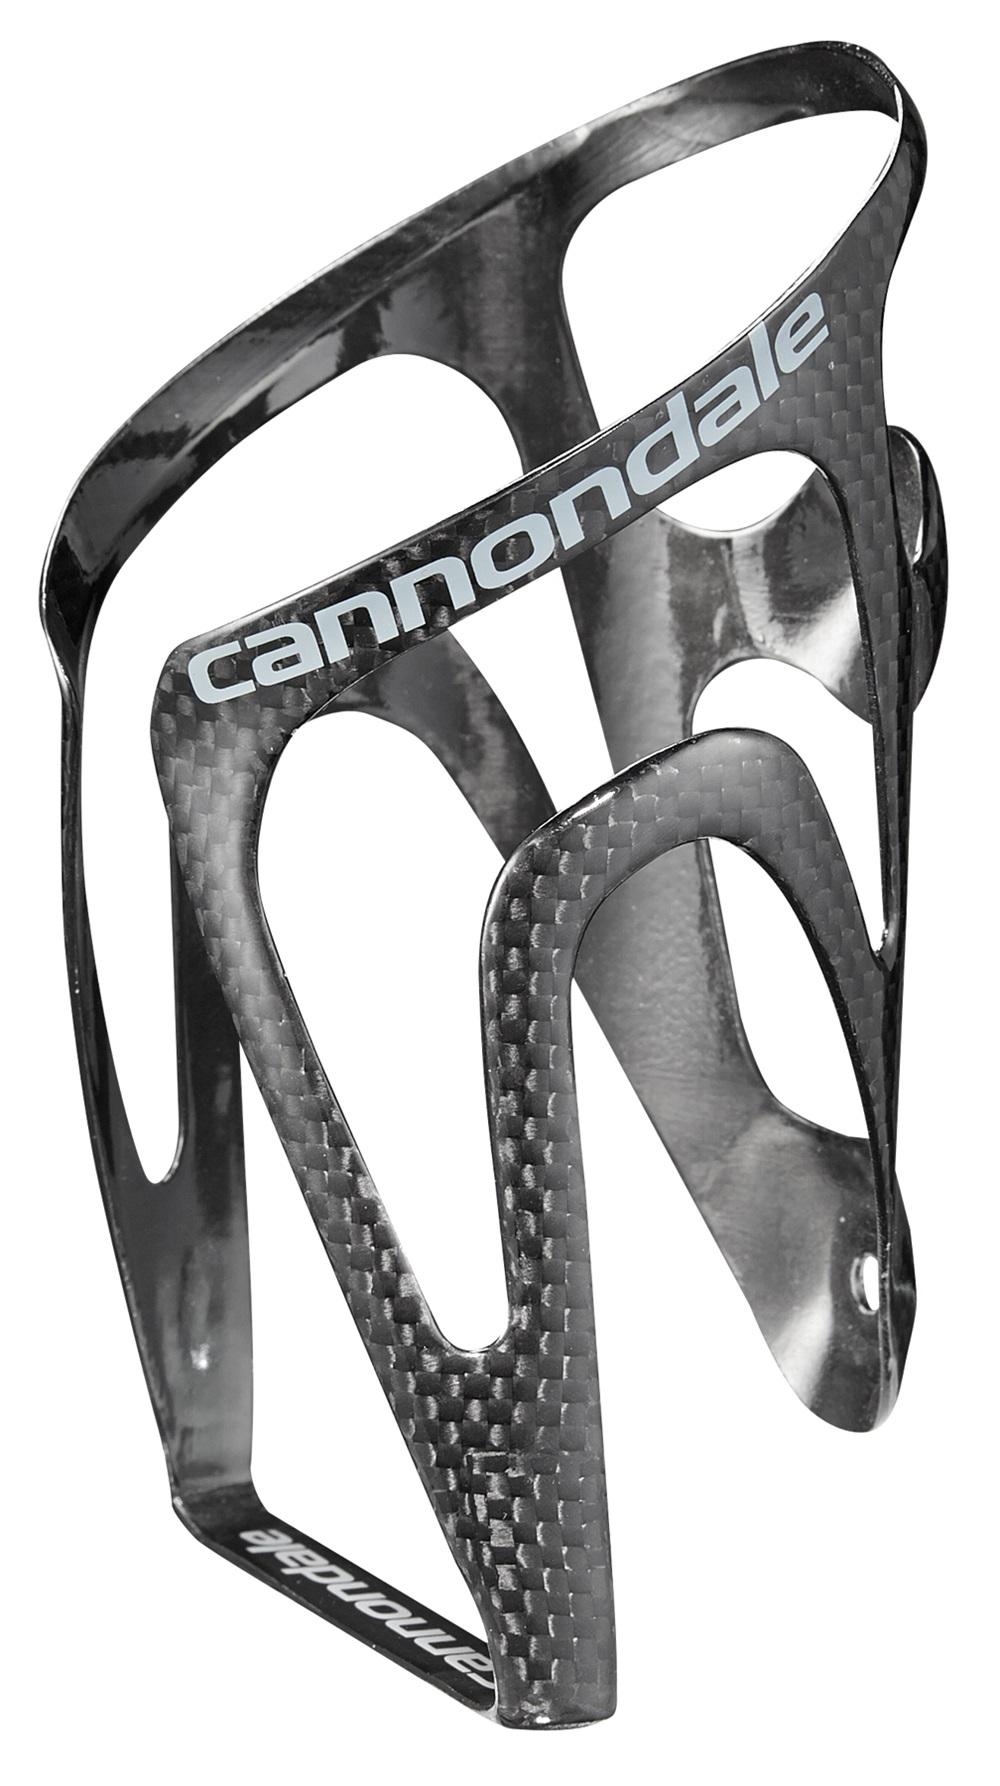 Afbeelding Cannondale Bidonhouder   / Carbon Speed C-SL Cage BBQ